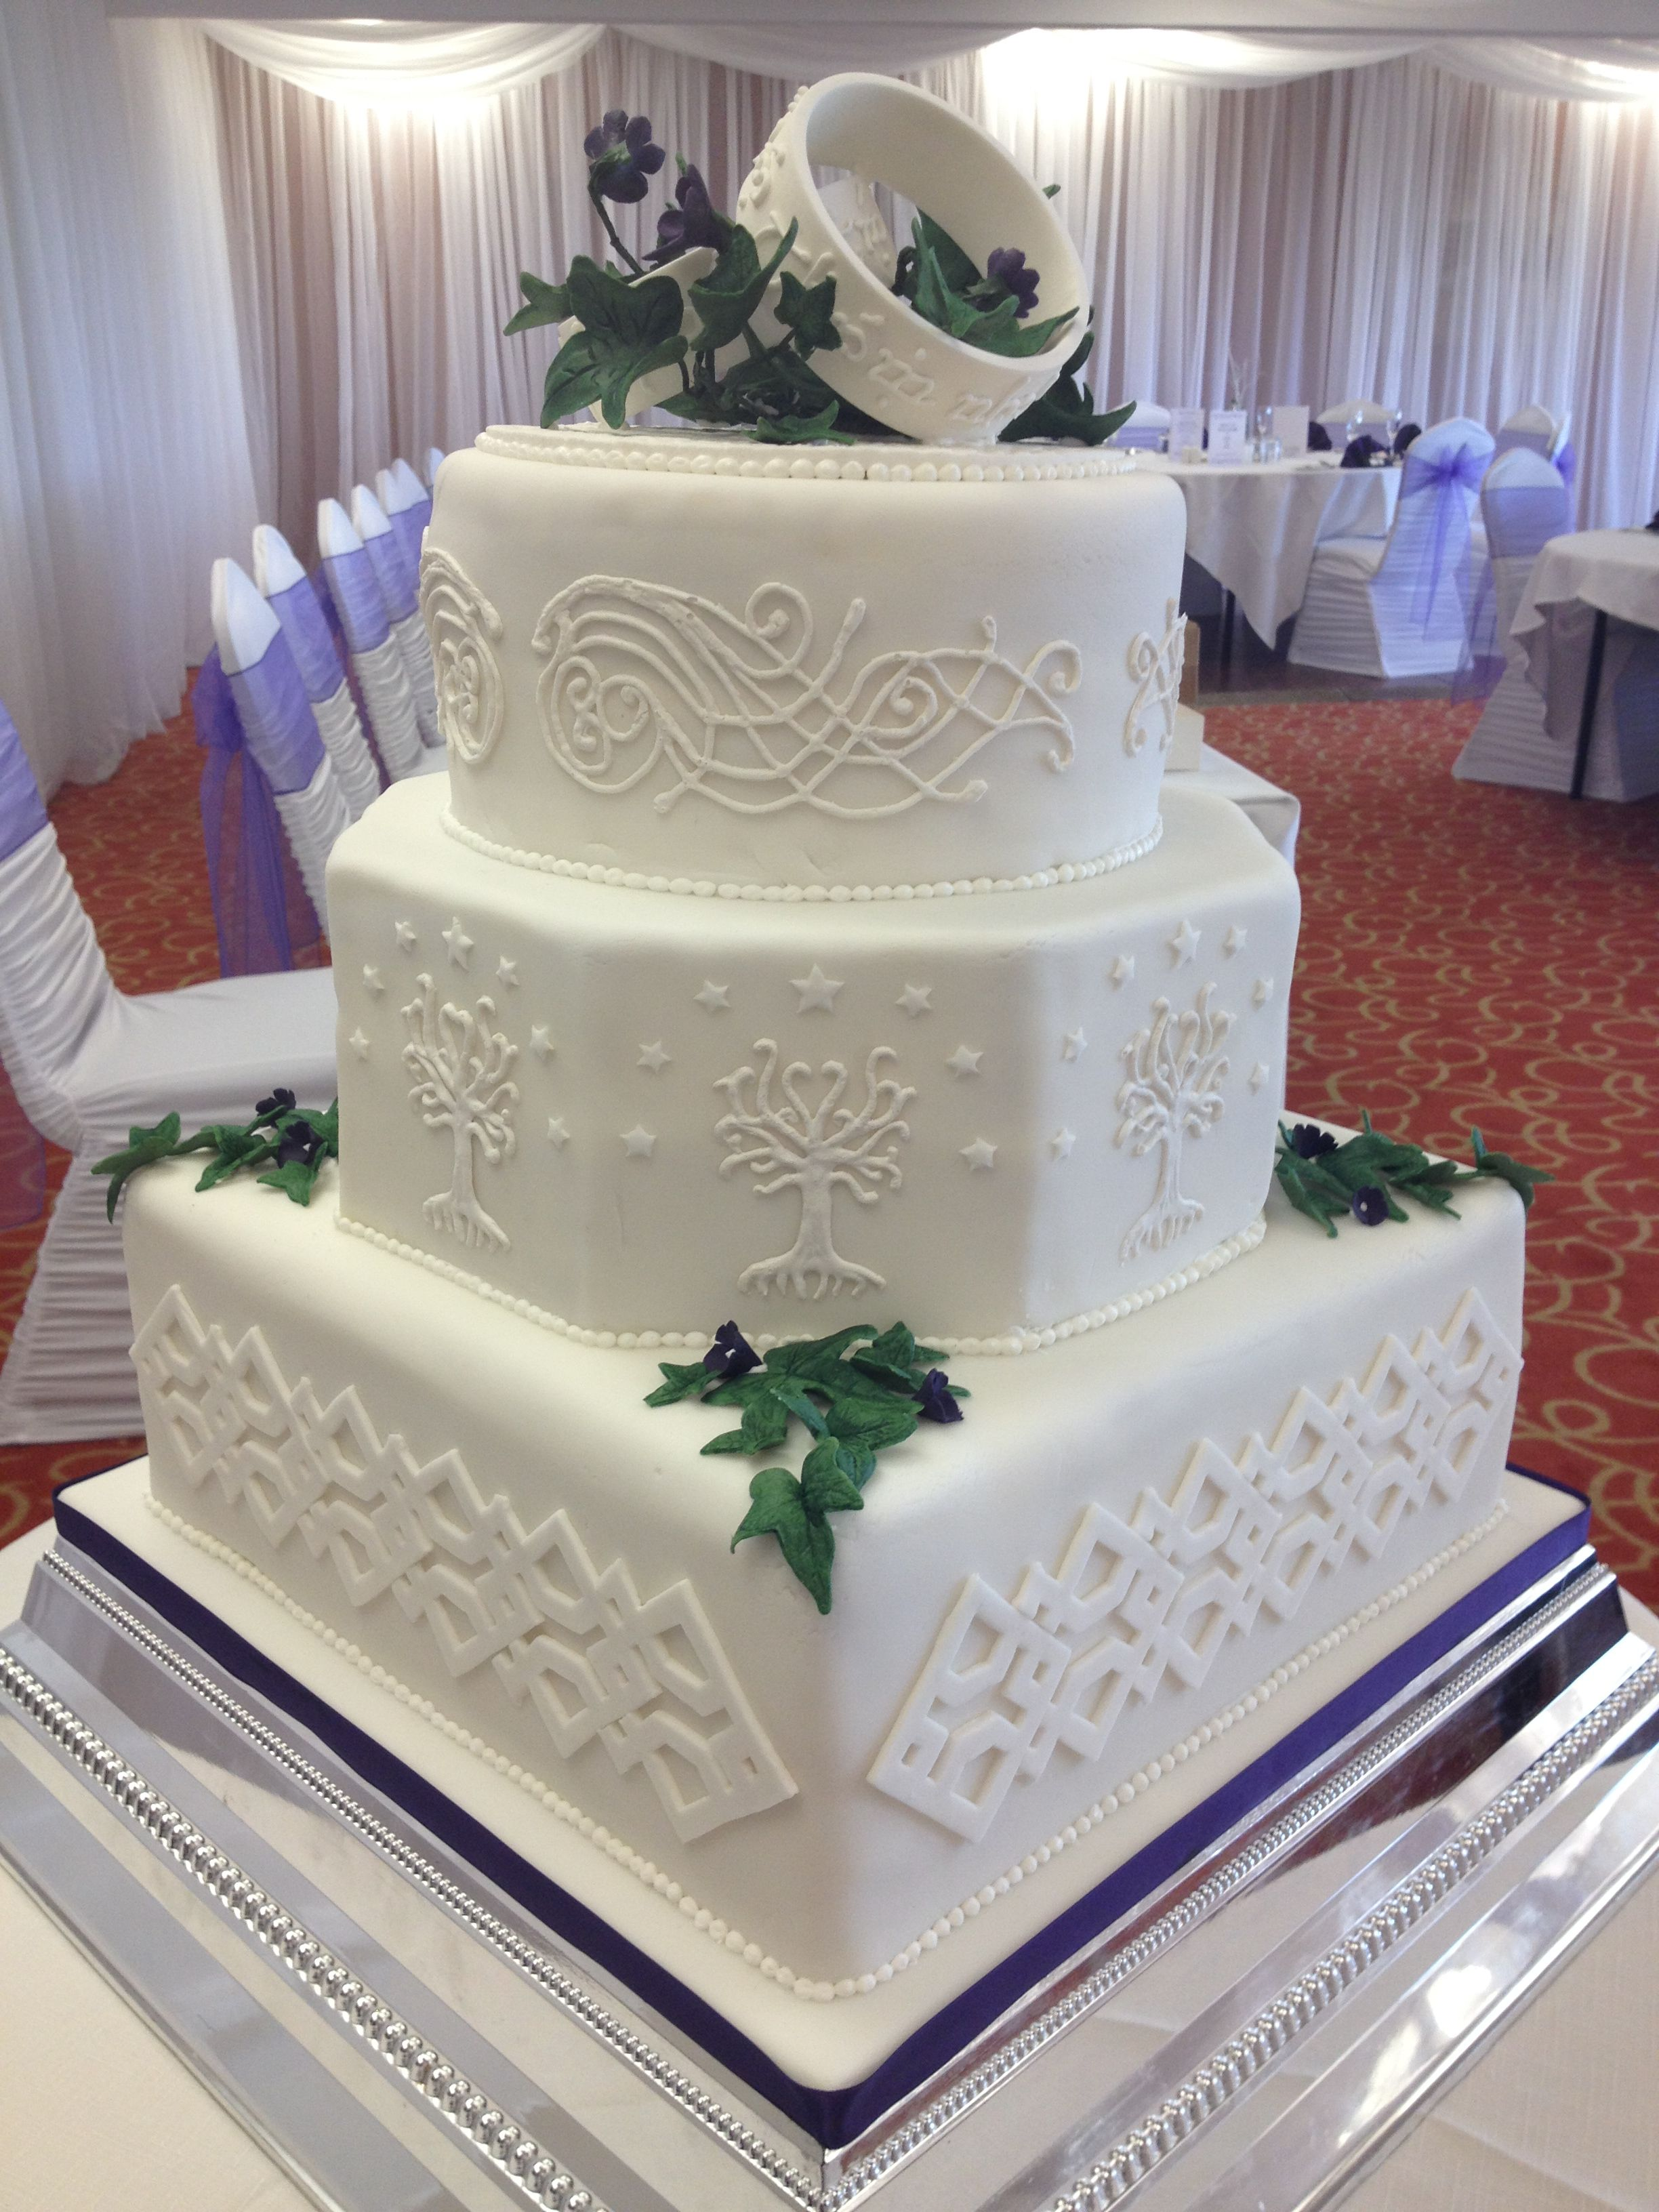 Lord Of The Rings Inspired Wedding Cake Inspiration For Base Tier Killi S Cloak Trim